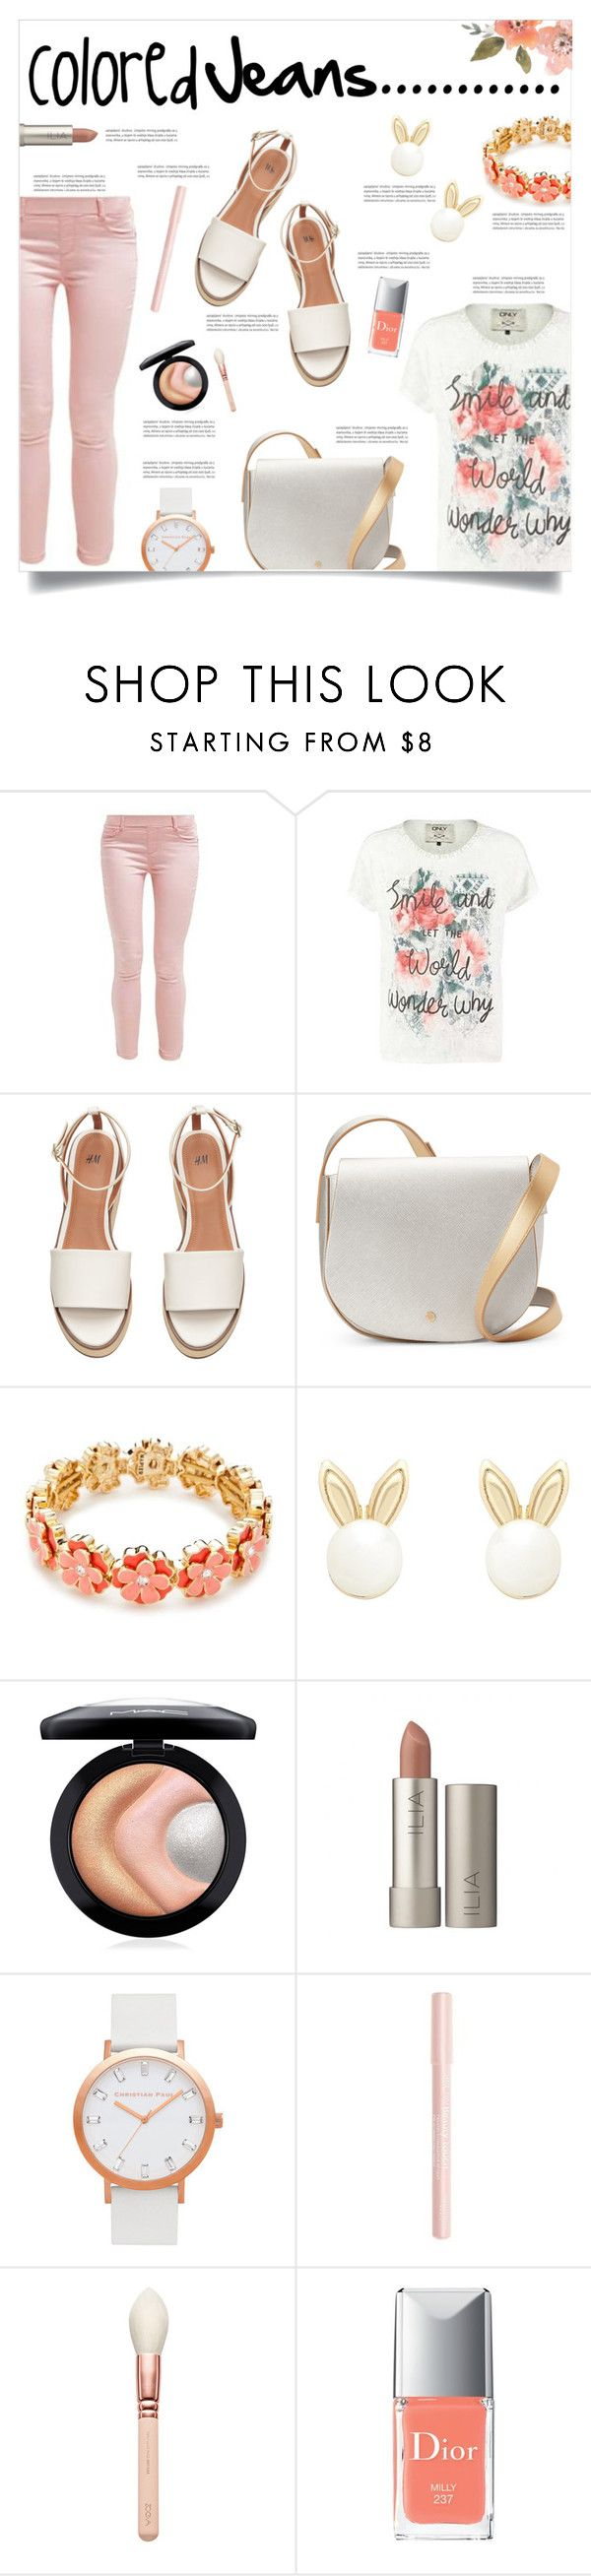 """Peach Jeans"" by simona-risi ❤ liked on Polyvore featuring Dorothy Perkins, Deux Lux, Napier, Lipsy, MAC Cosmetics, Oris, Bourjois, Christian Dior, Dior and HM"